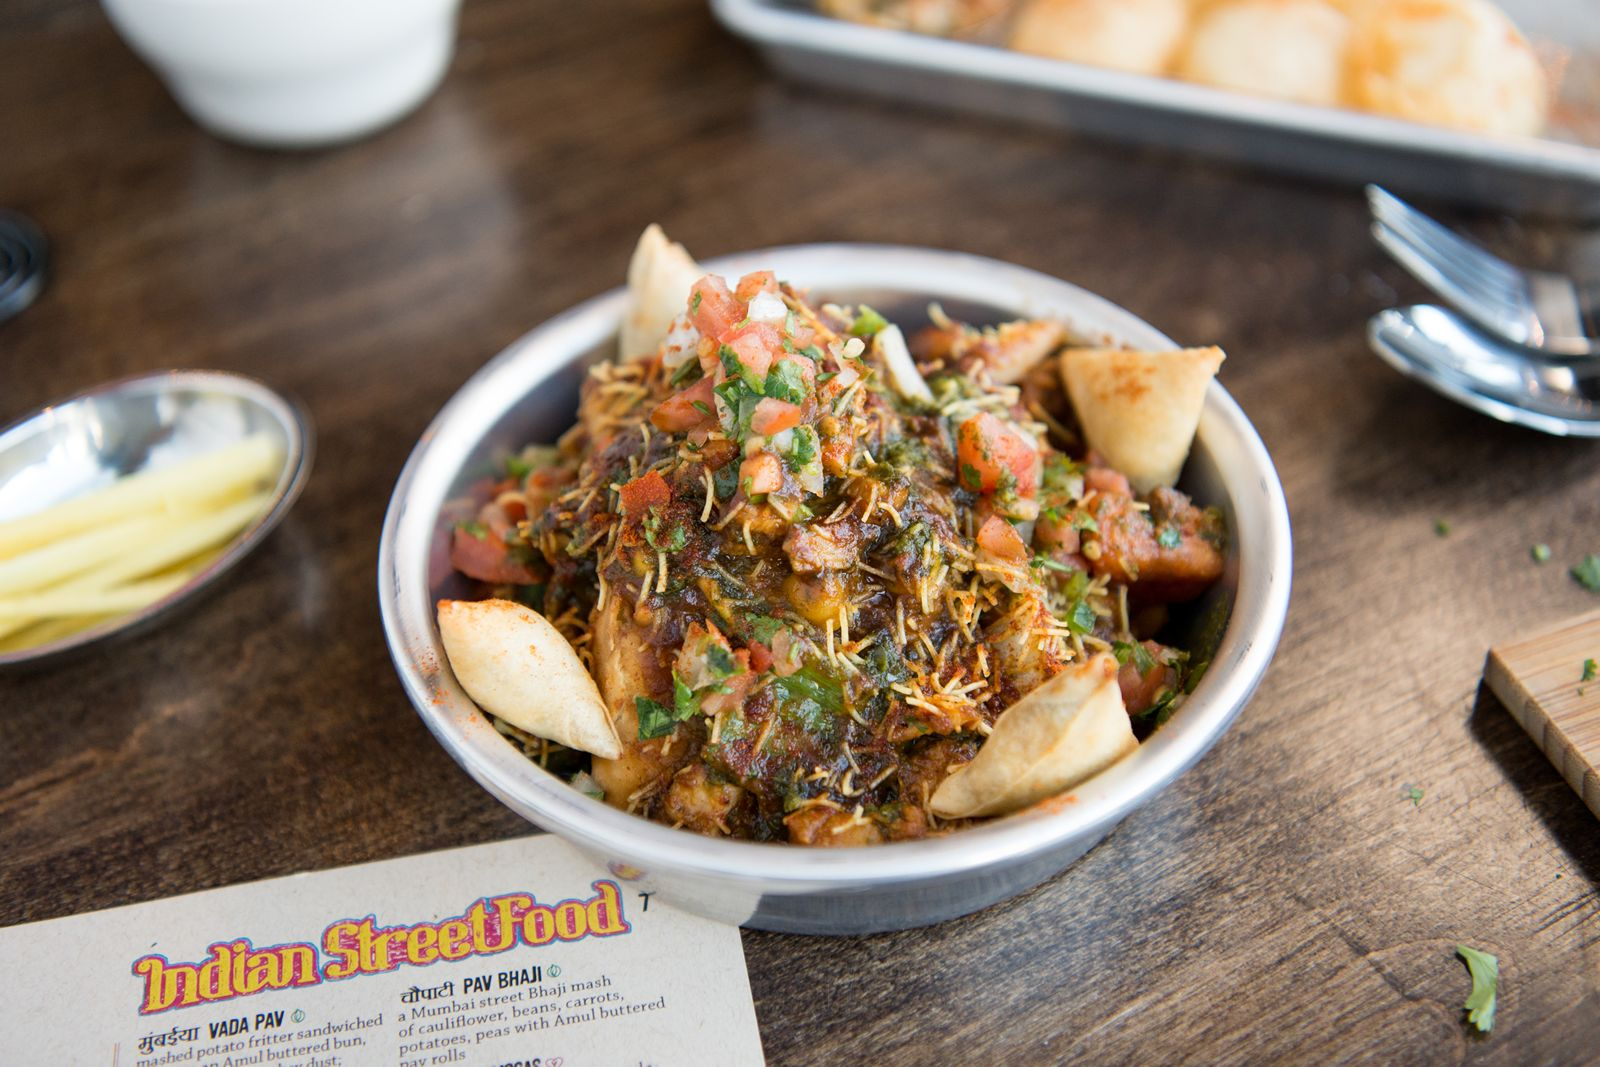 Curry Up Now, the California-based concept pioneering innovative Indian fast casual cuisine across the country, has secured locations for three of the five restaurant locations they have planned for the greater Atlanta, Georgia area.